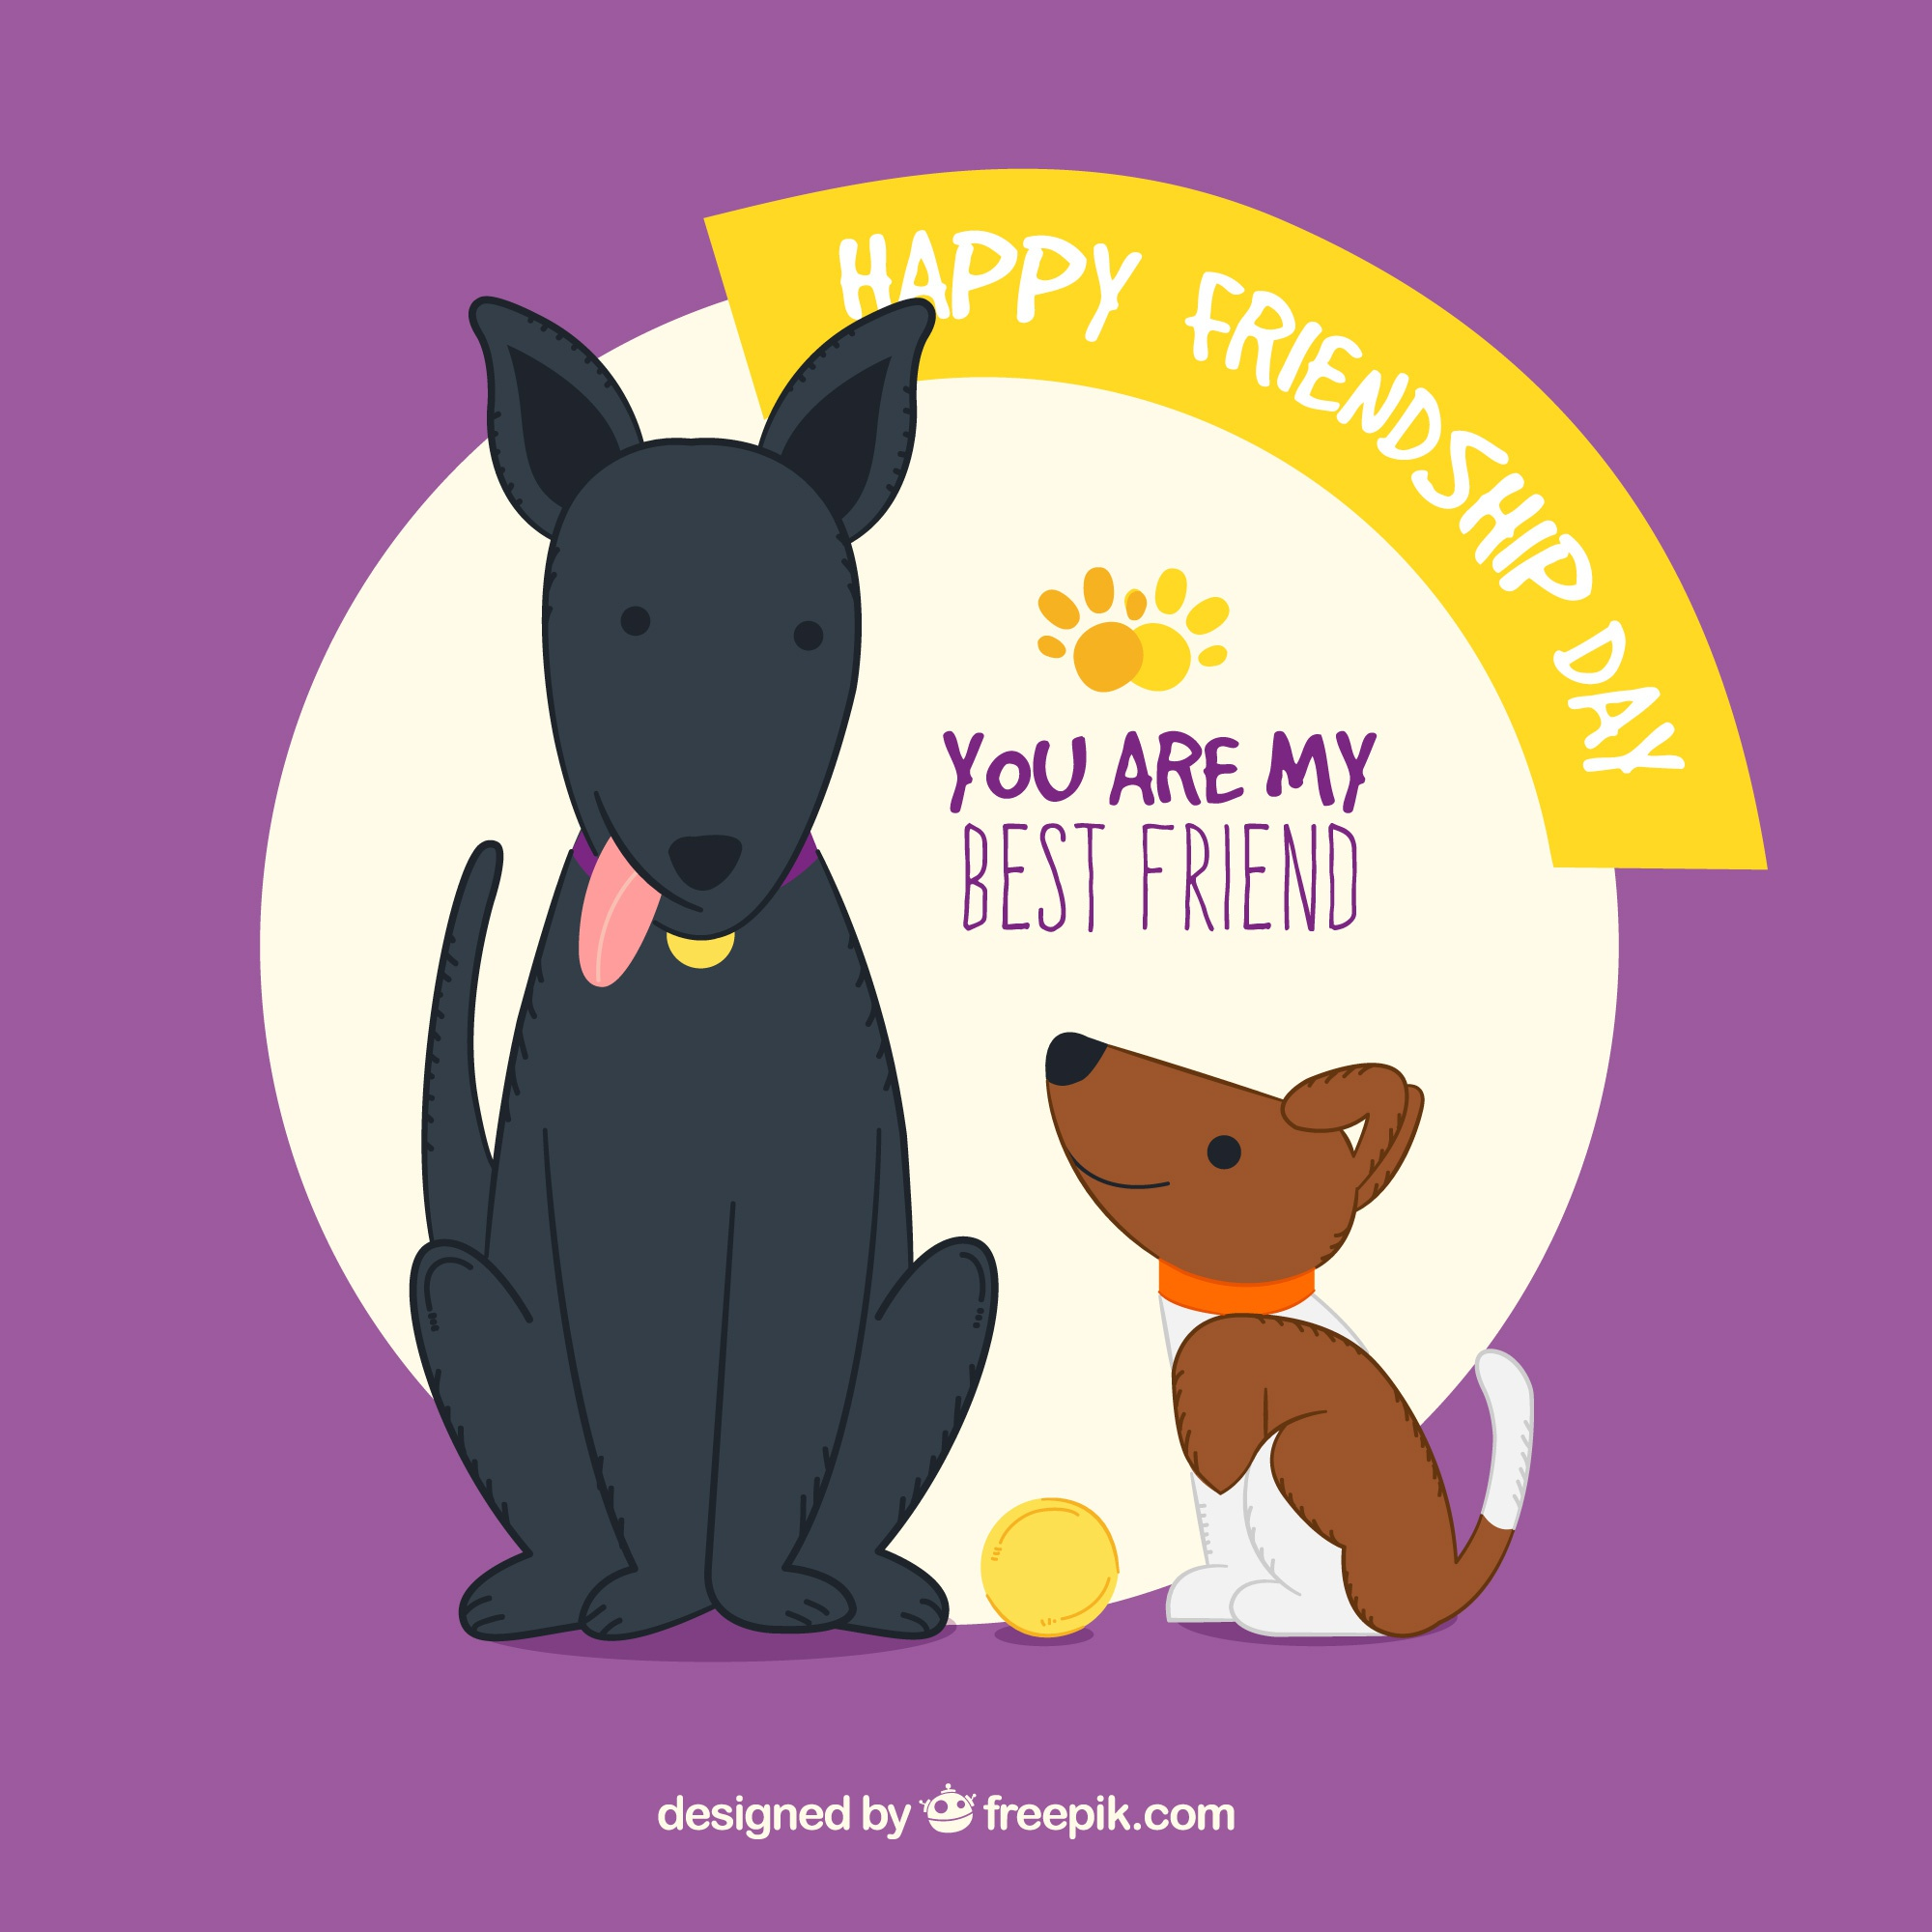 Friendship day background with two dogs